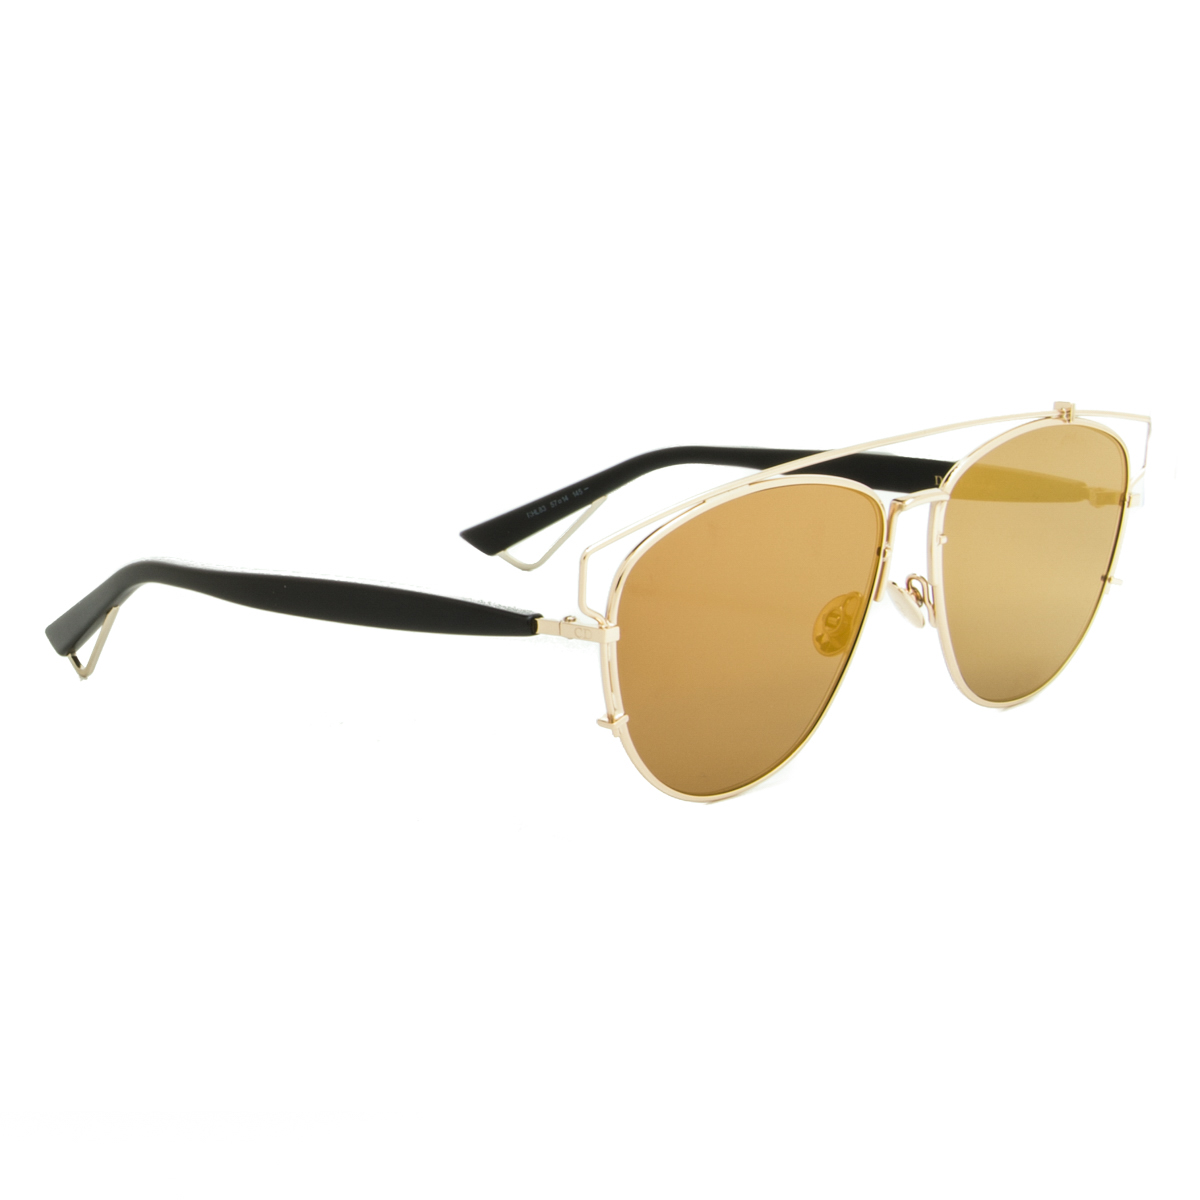 Dior Sunglasses Dior Technologic RHL83 Gold Black Frame ...